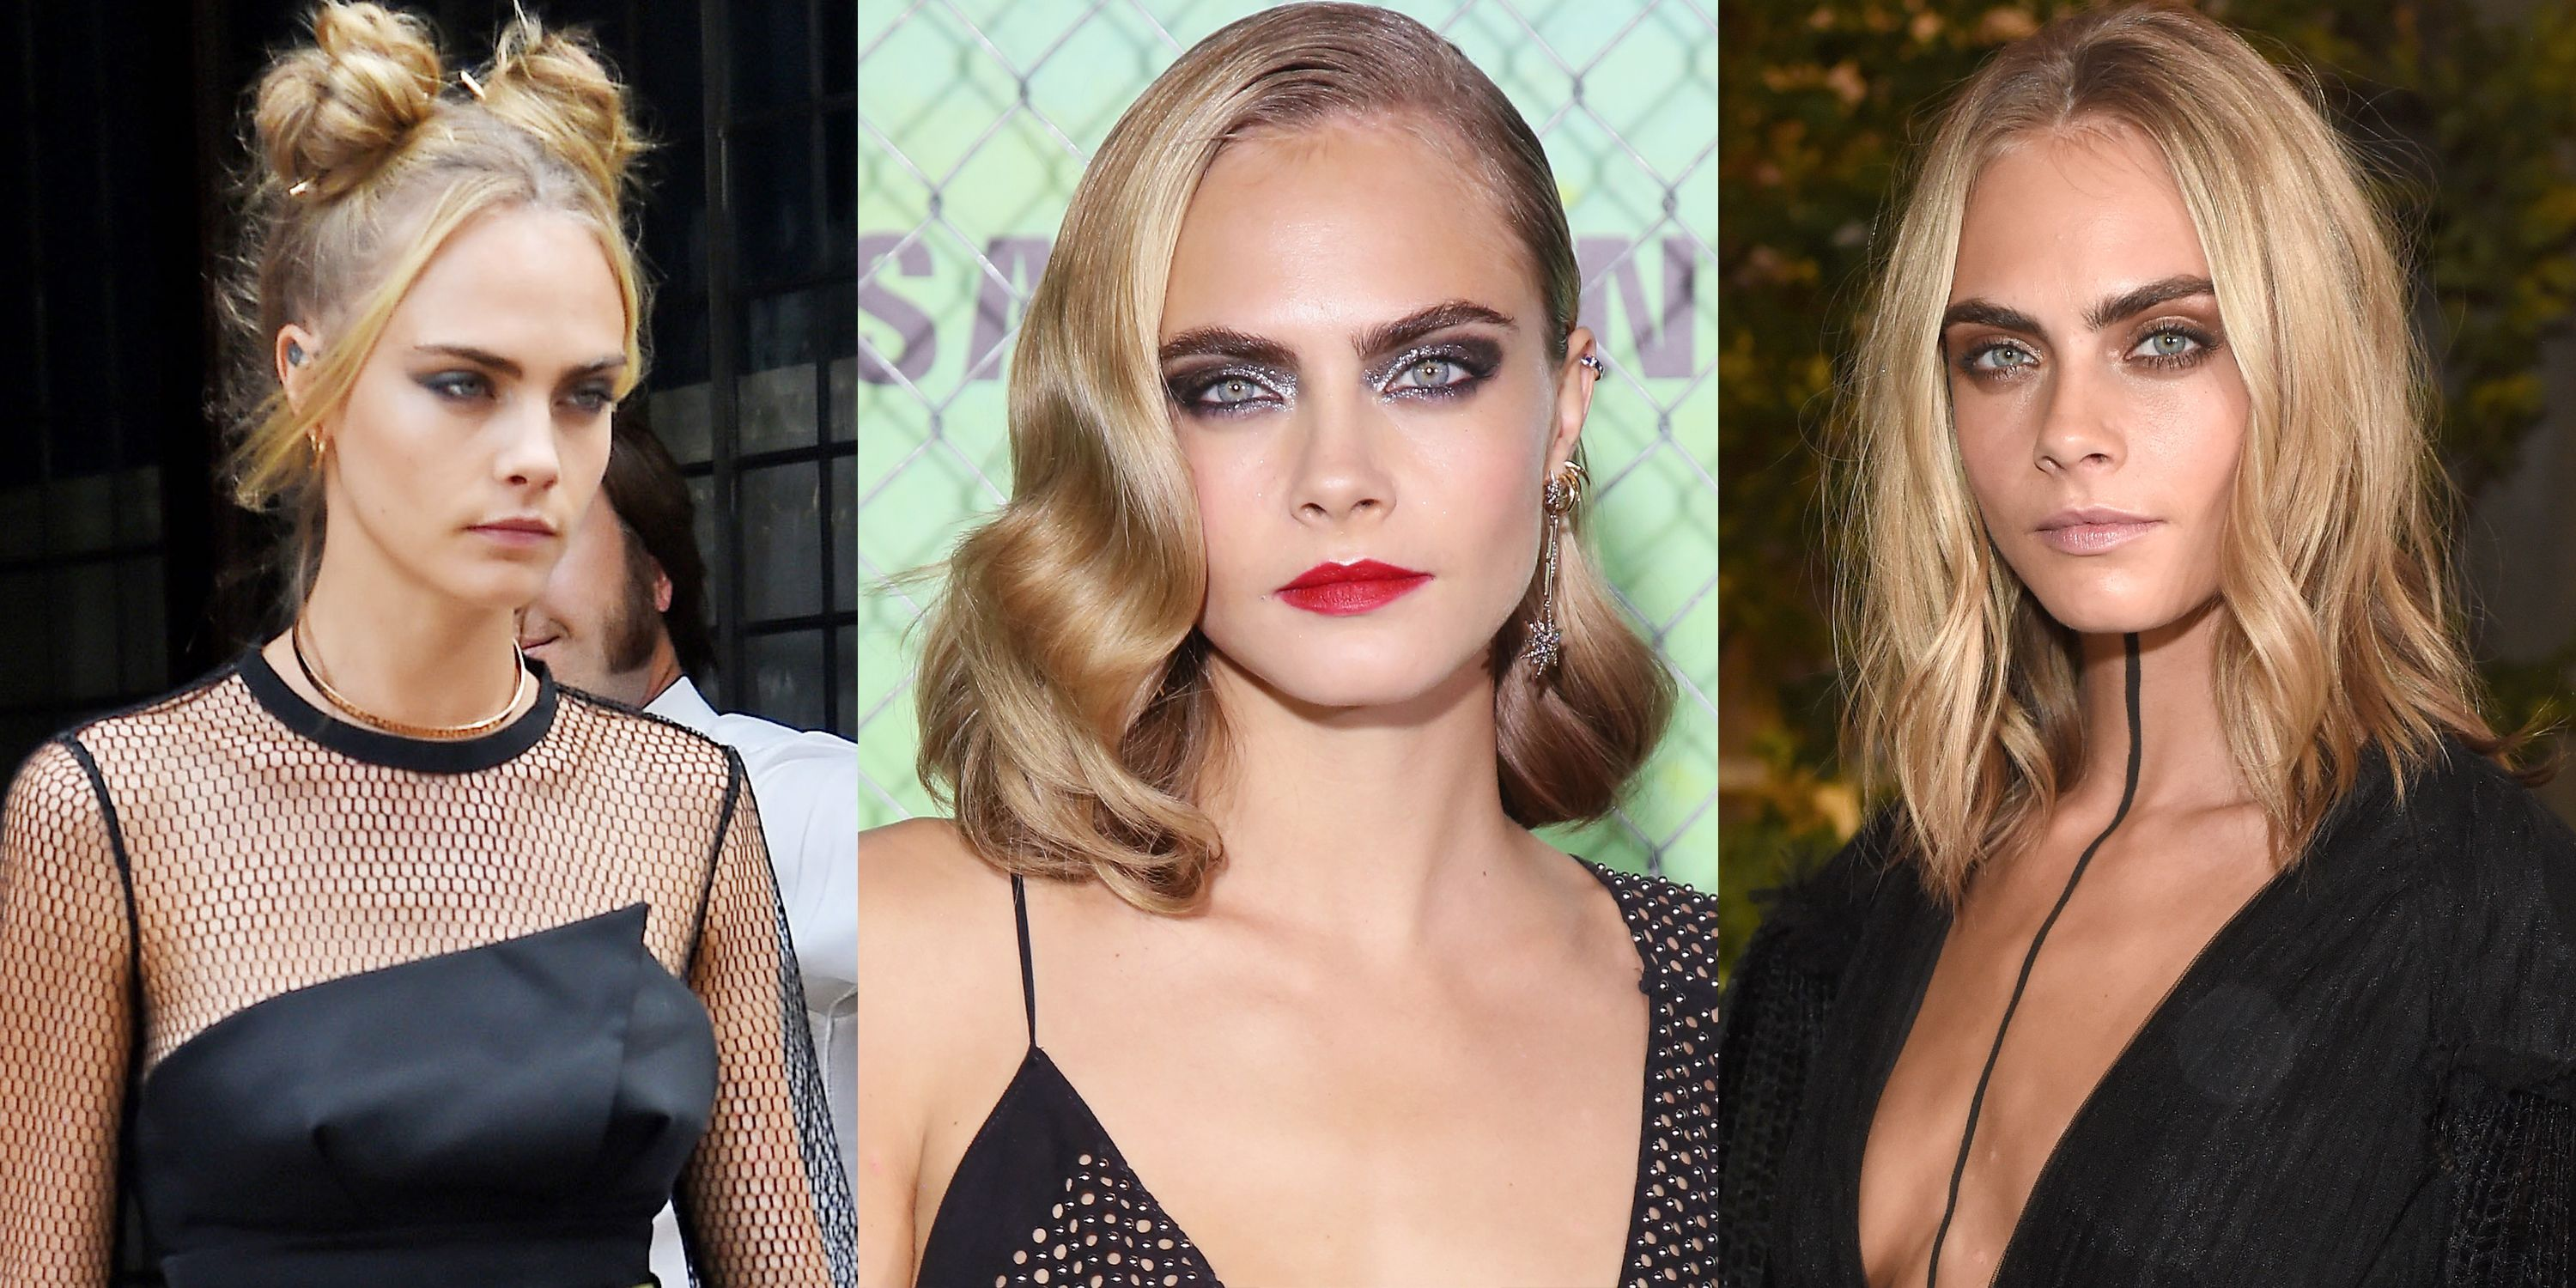 "<p>In between attending runway shows and premieres for her film <em data-redactor-tag=""em"" data-verified=""redactor"">Suicide Squad,</em> Cara Delevingne brought her beauty A-game in 2016. </p>"